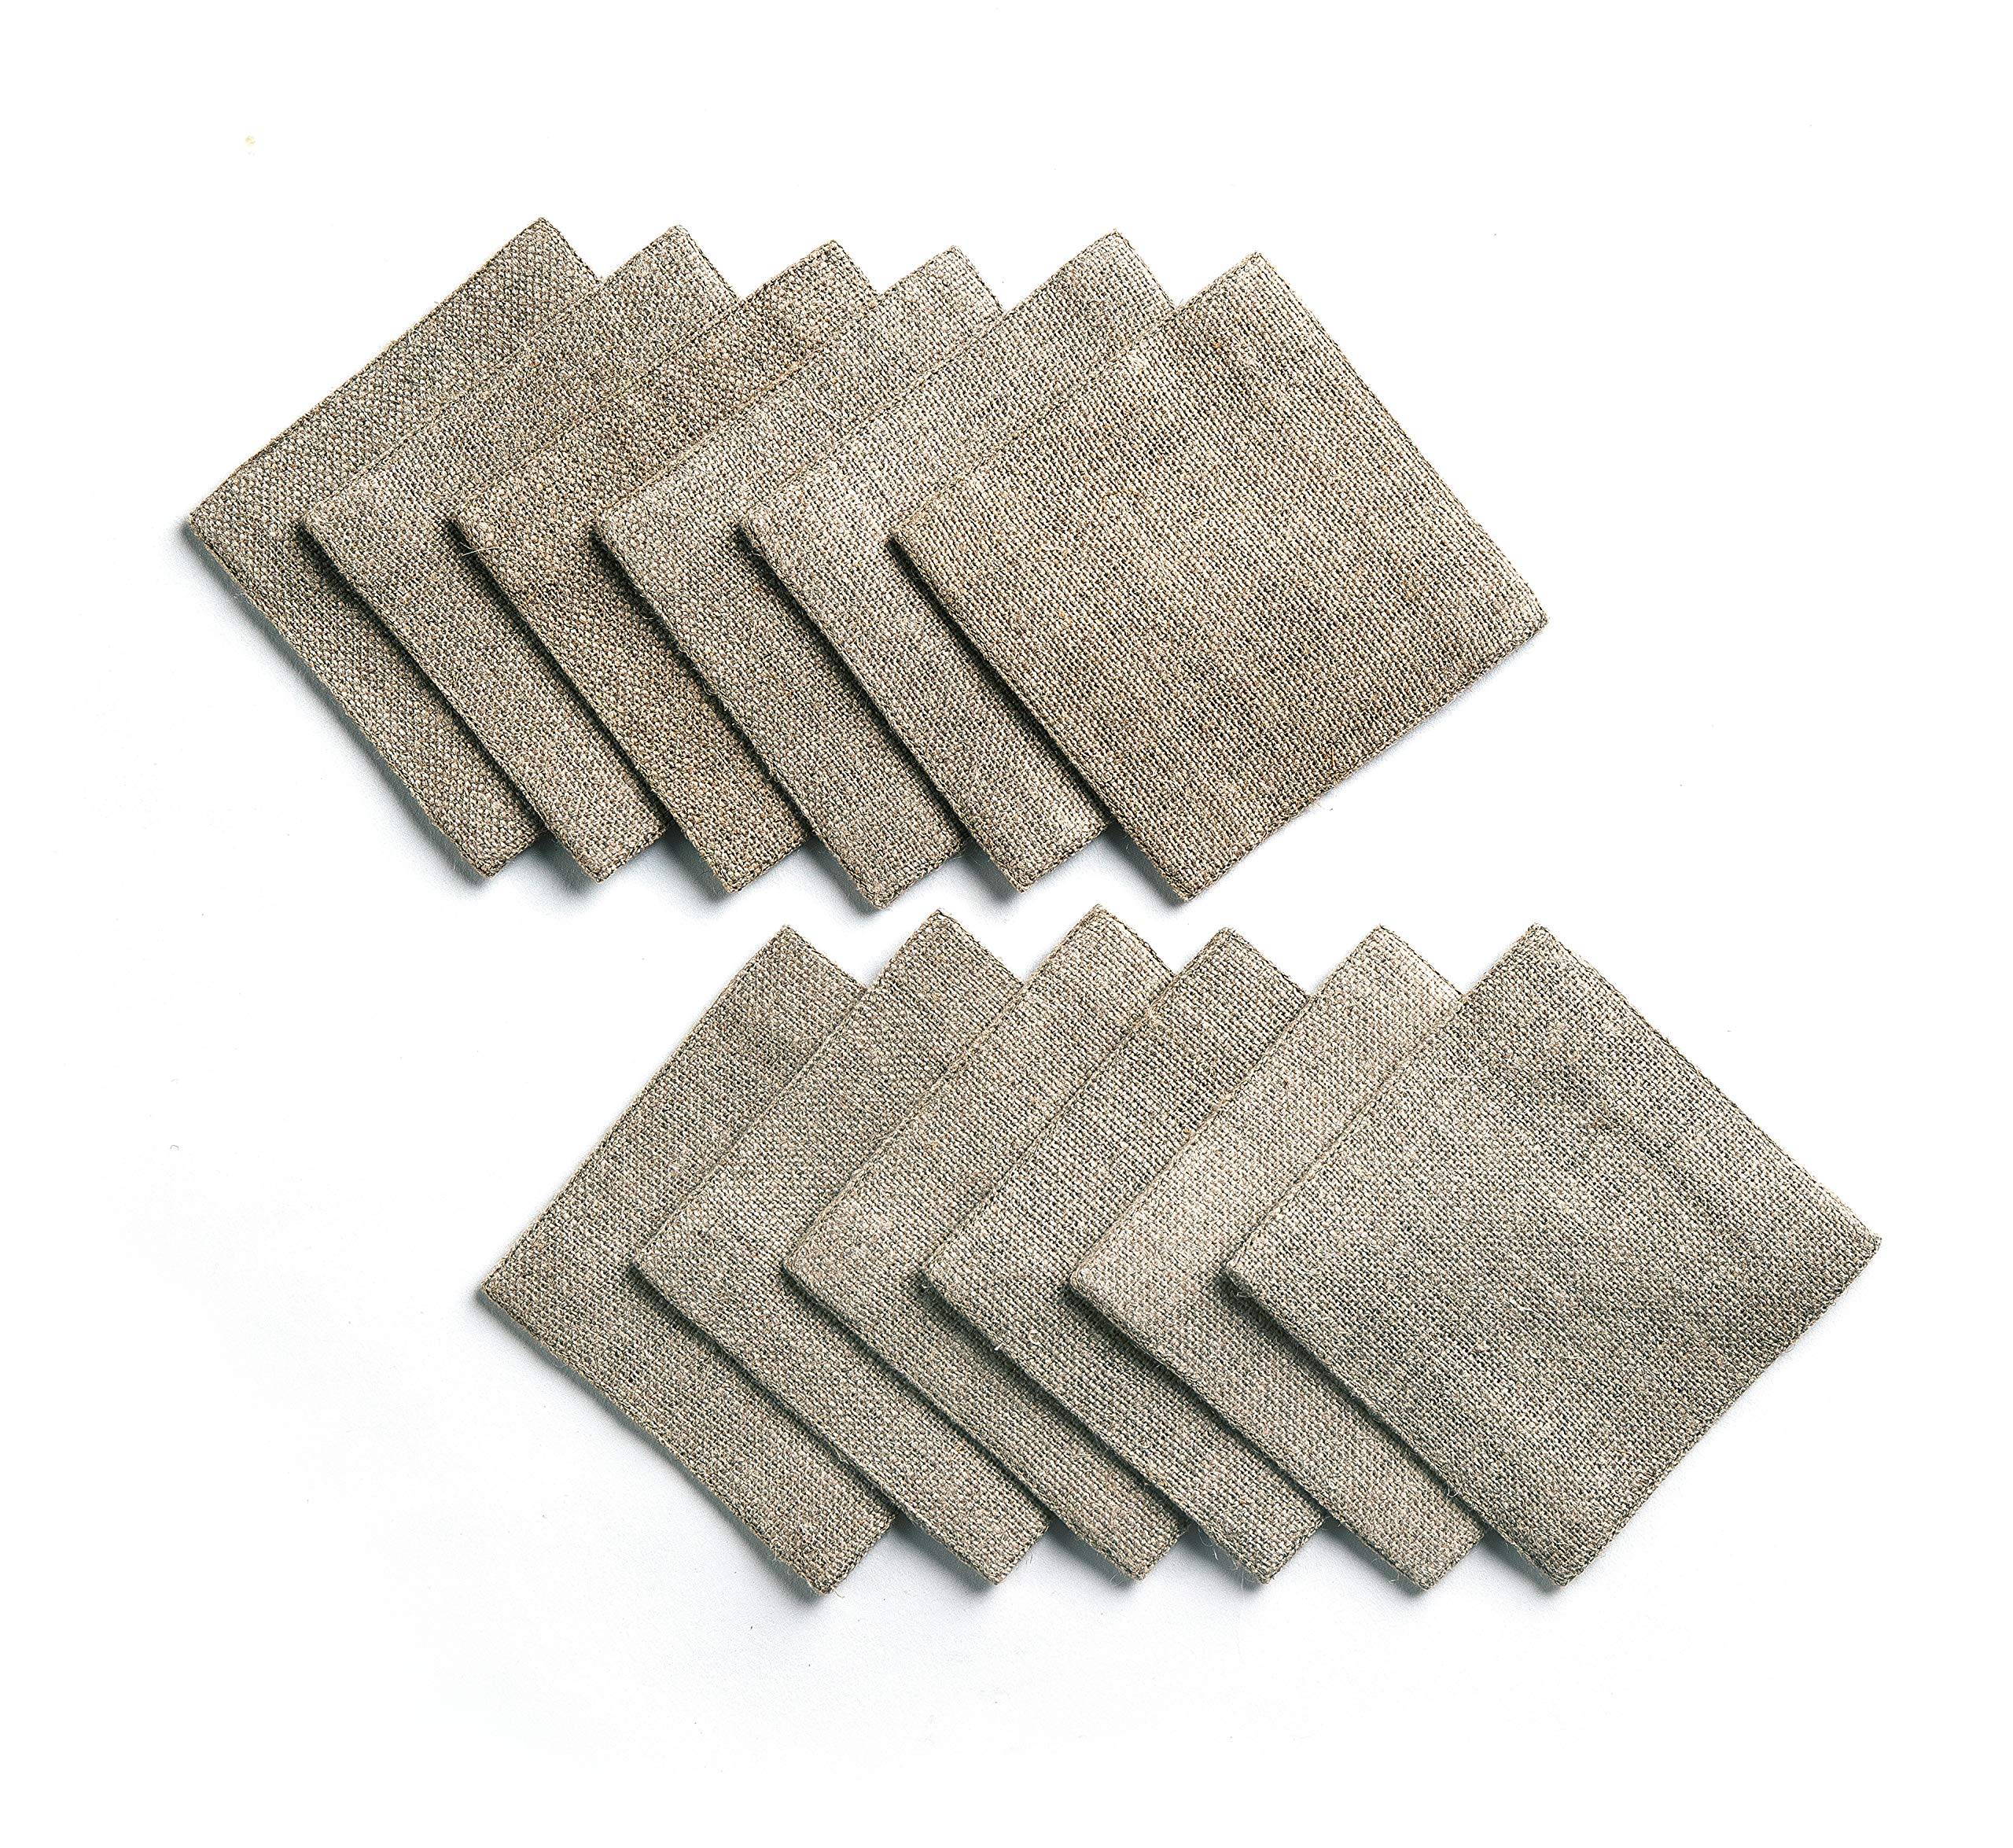 Solino Home Rustic Linen Coasters - 4 x 4 Inch, Set of 12 Handwoven and Handcrafted - Natura Collection, Dark Soil Coaster